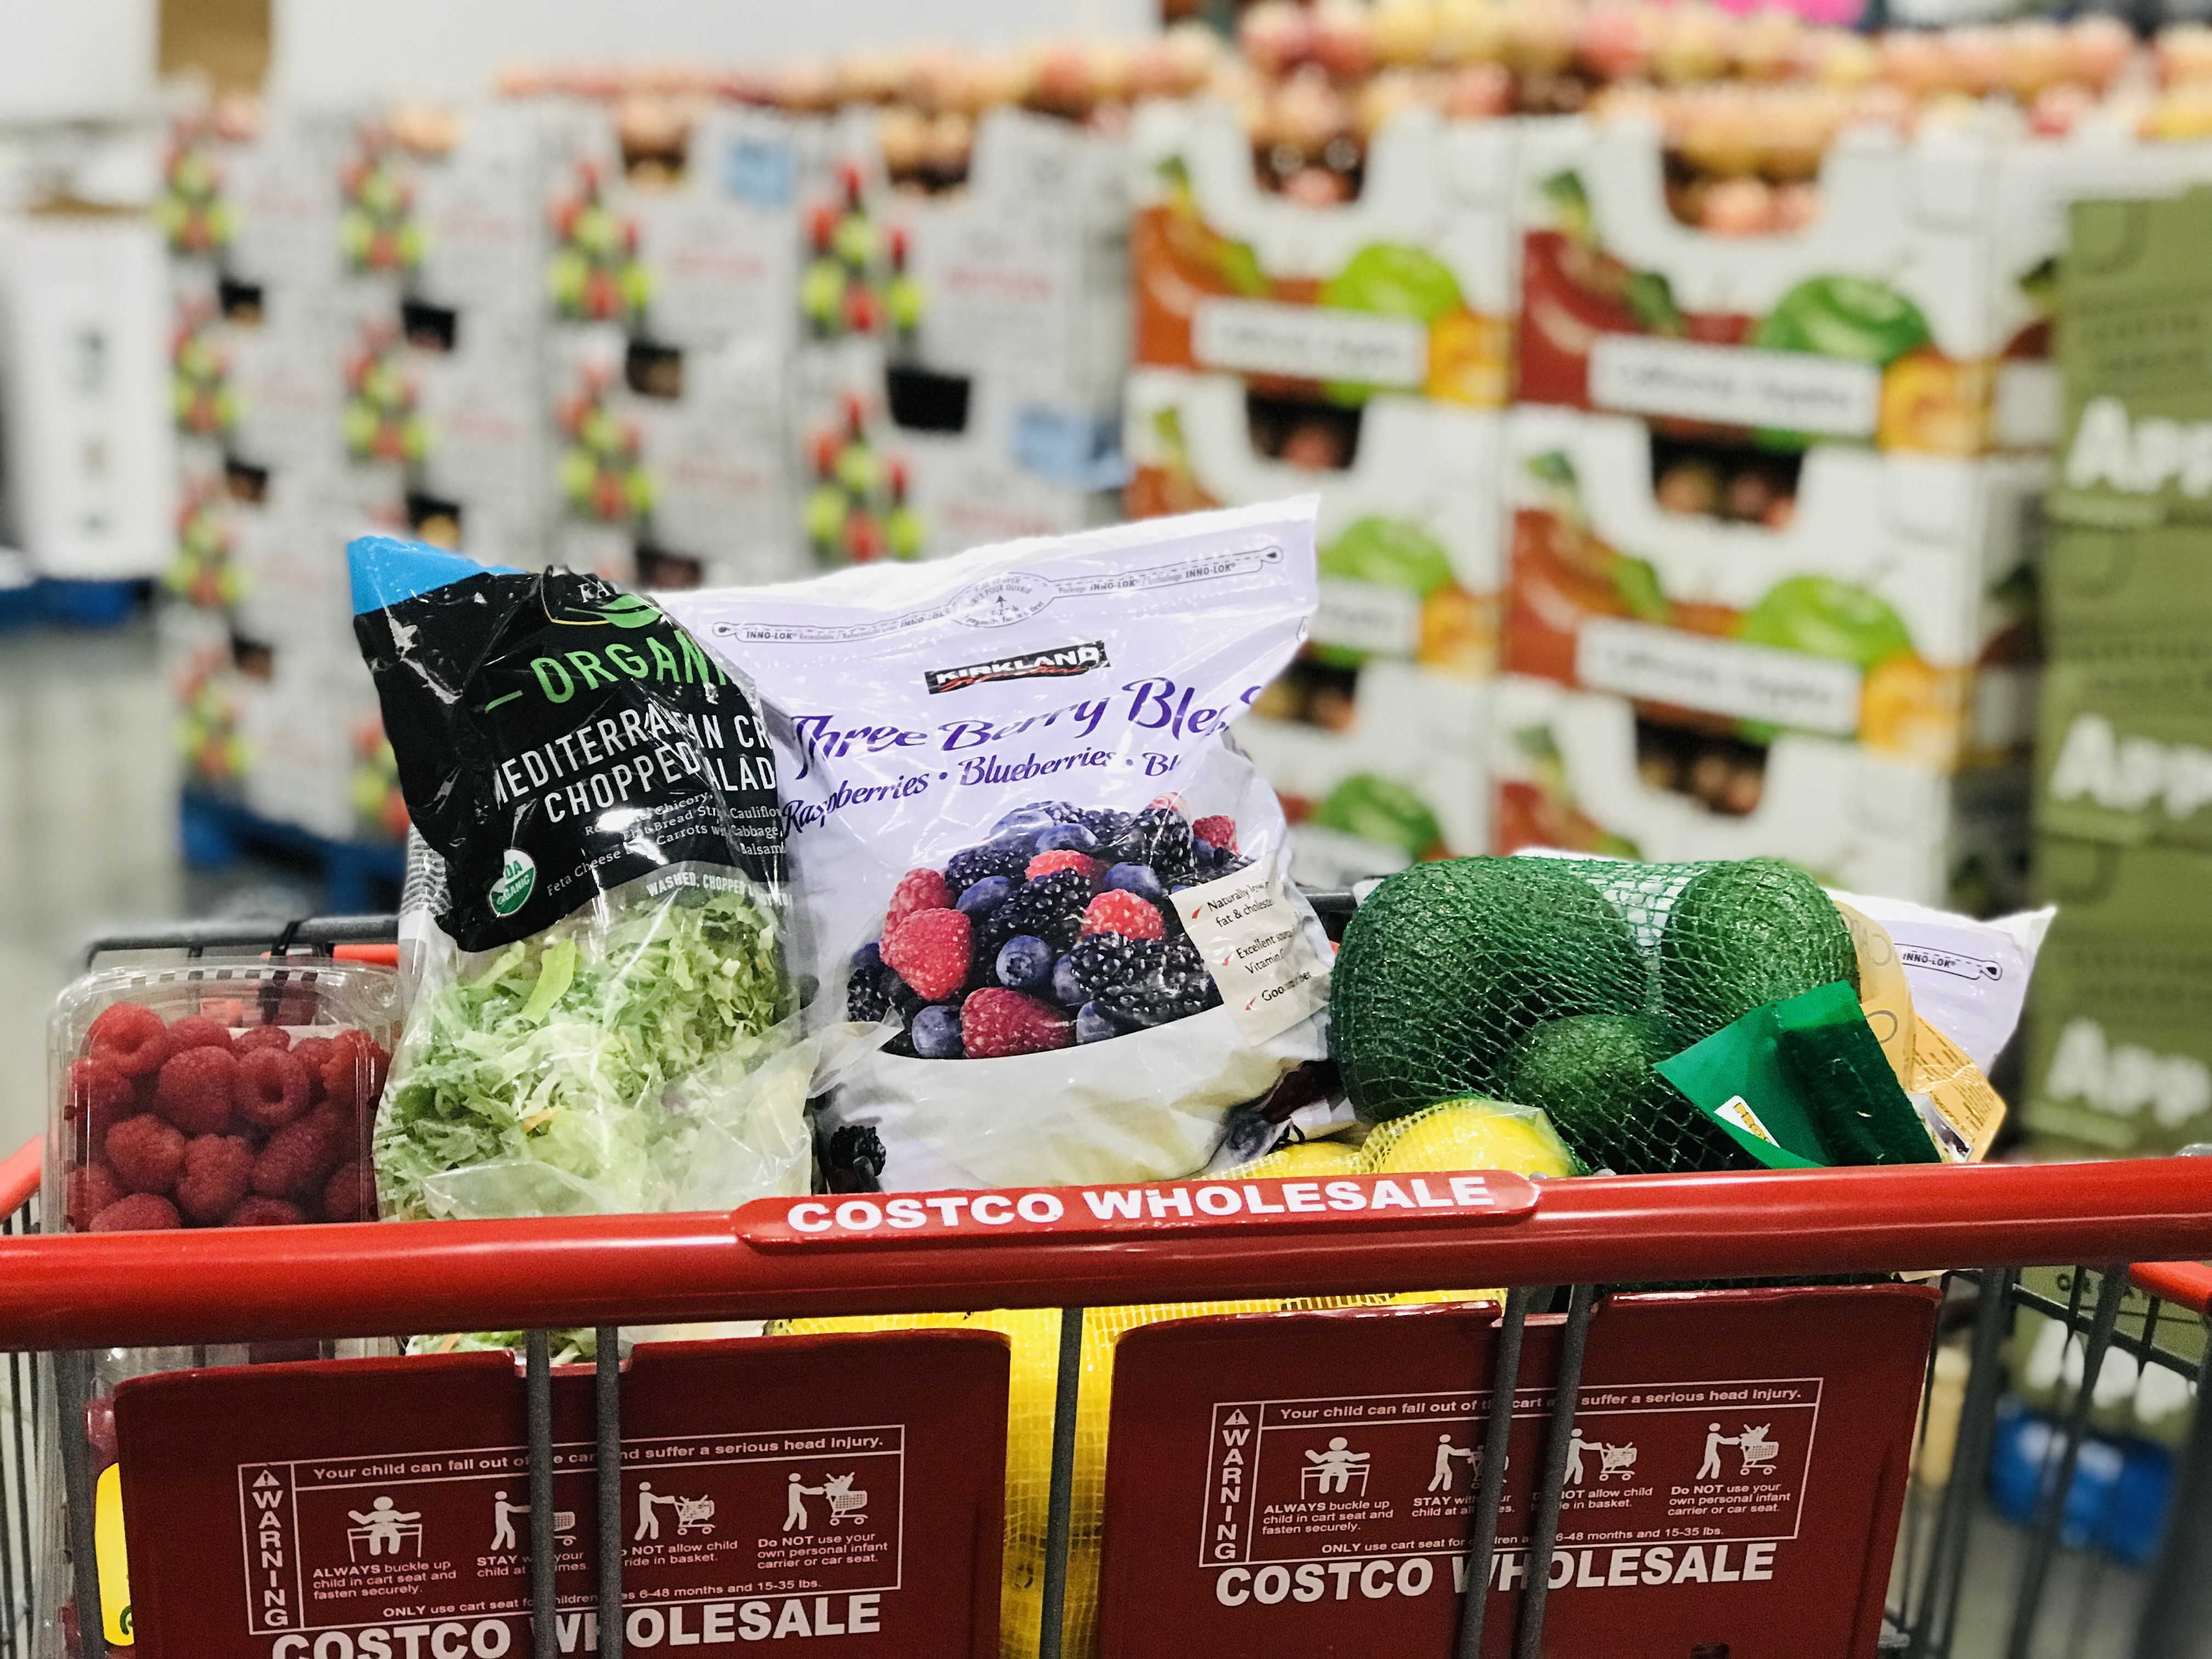 Clean Eating? Costco's Got 19 Products You'll Love - The